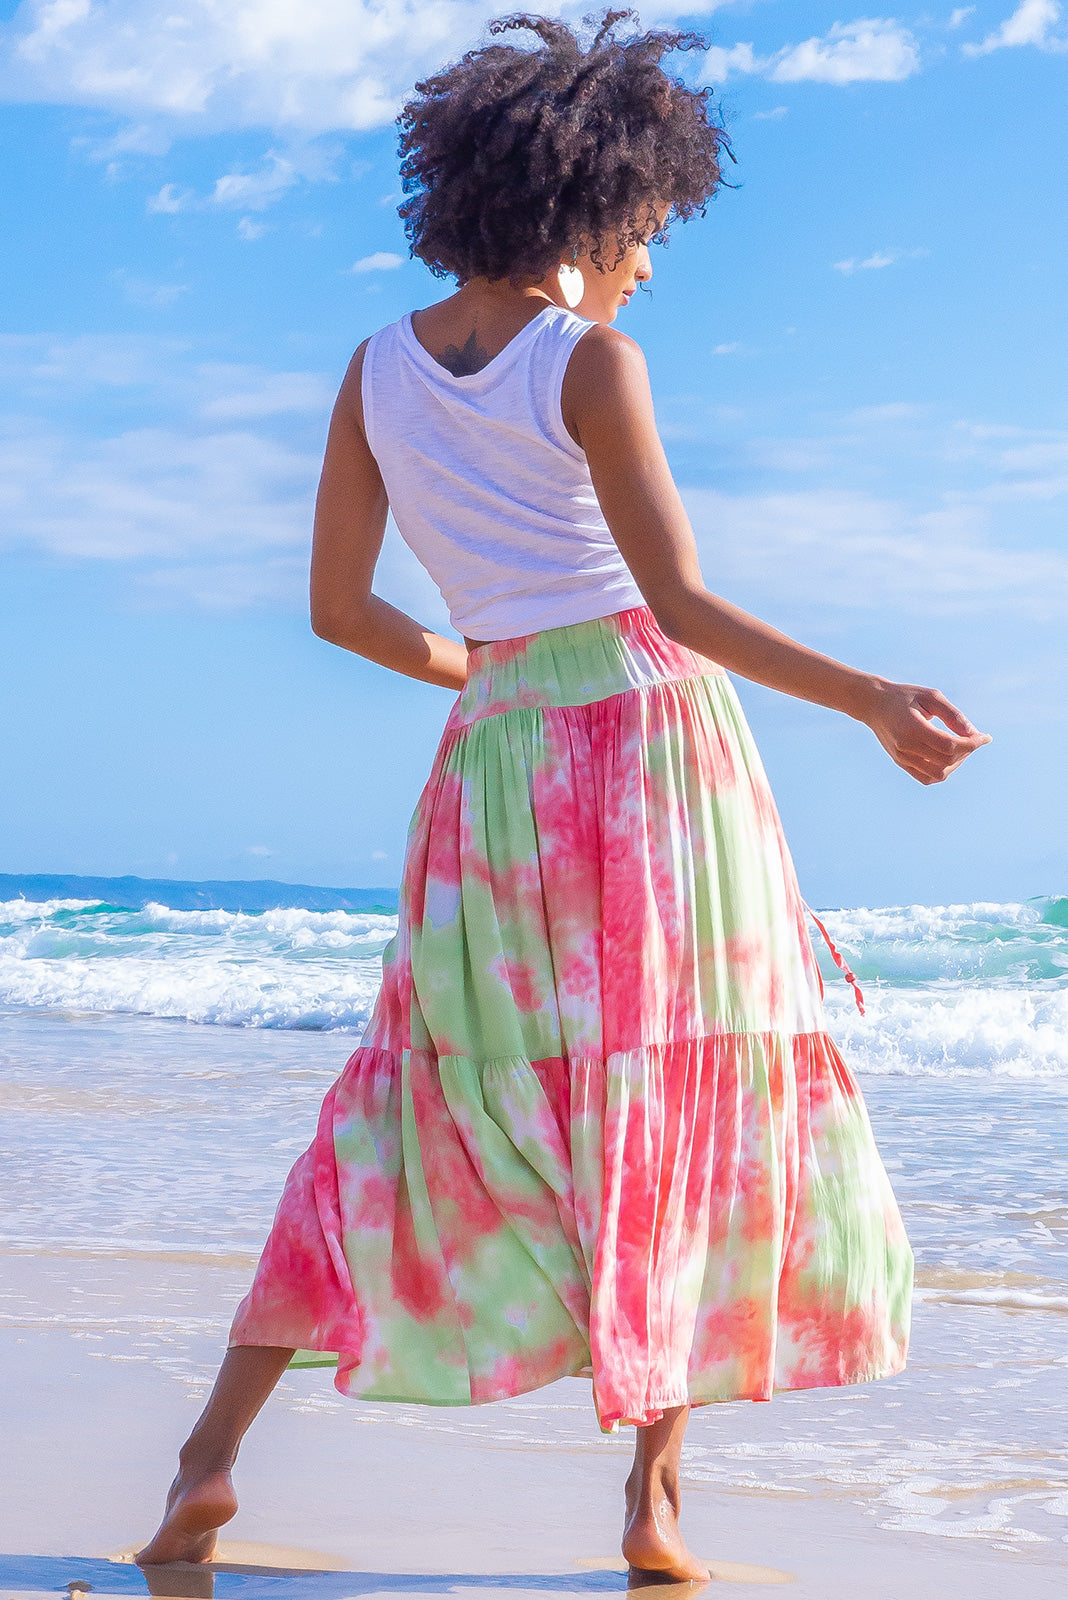 Summer must-have skirt is here, the Valencia Watermelon Tie Dye Maxi Skirt features elasticated waistband with decorative tie, side pockets and 100% rayon in tie dye print of green and watermelon red.